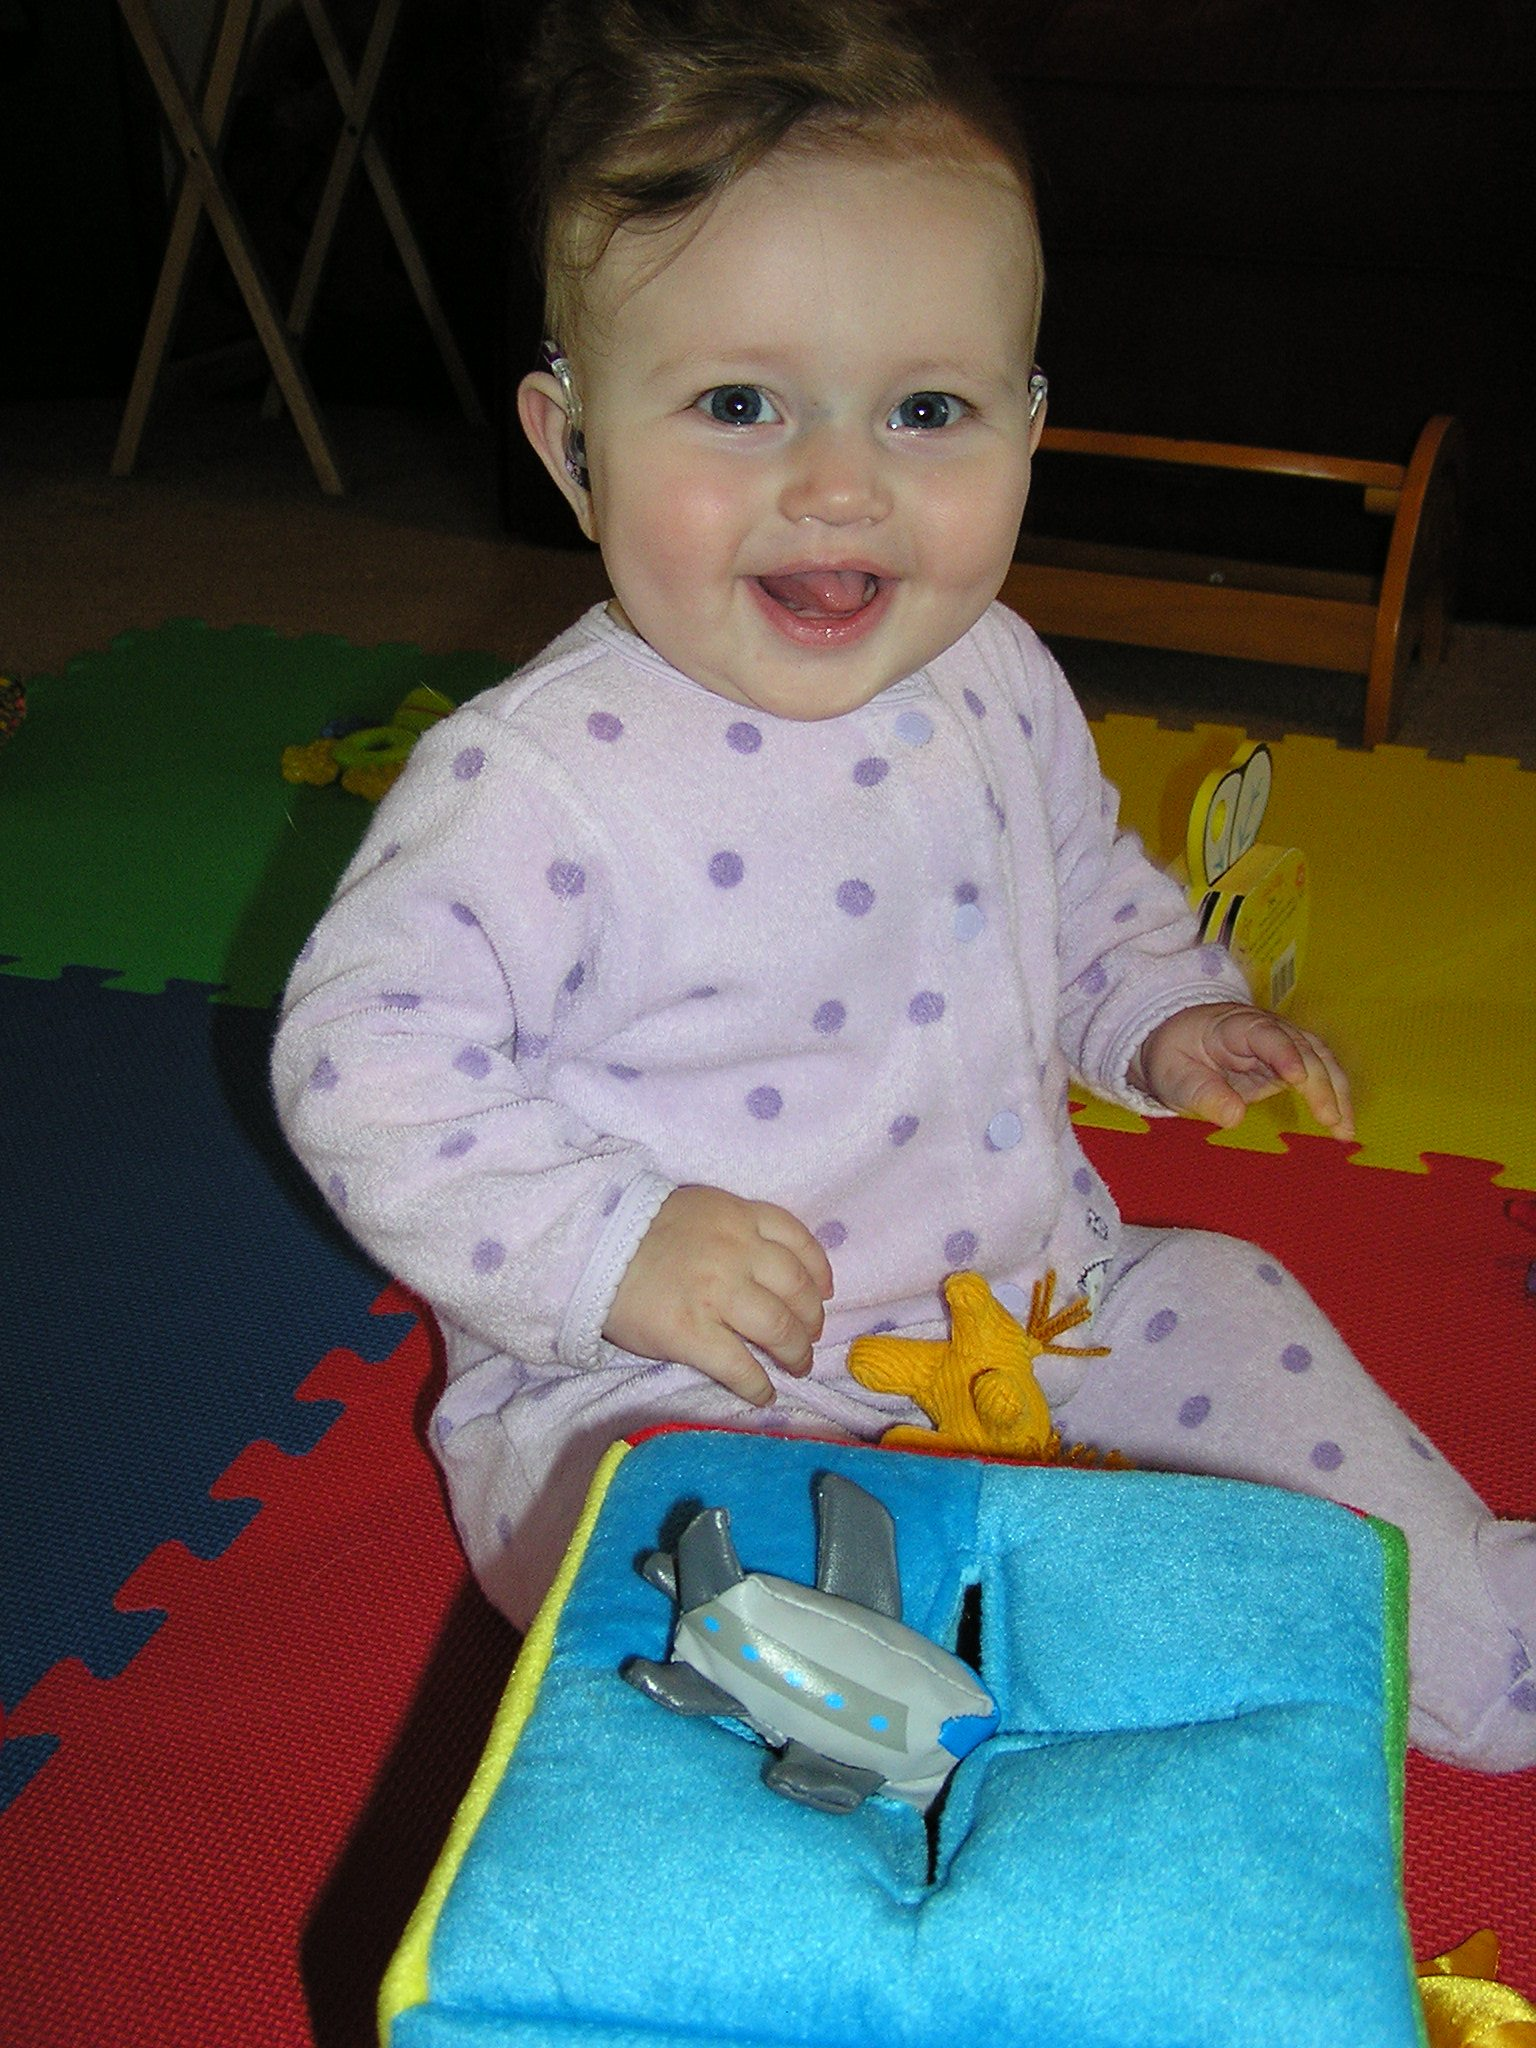 Baby smiling and playing with airplane book